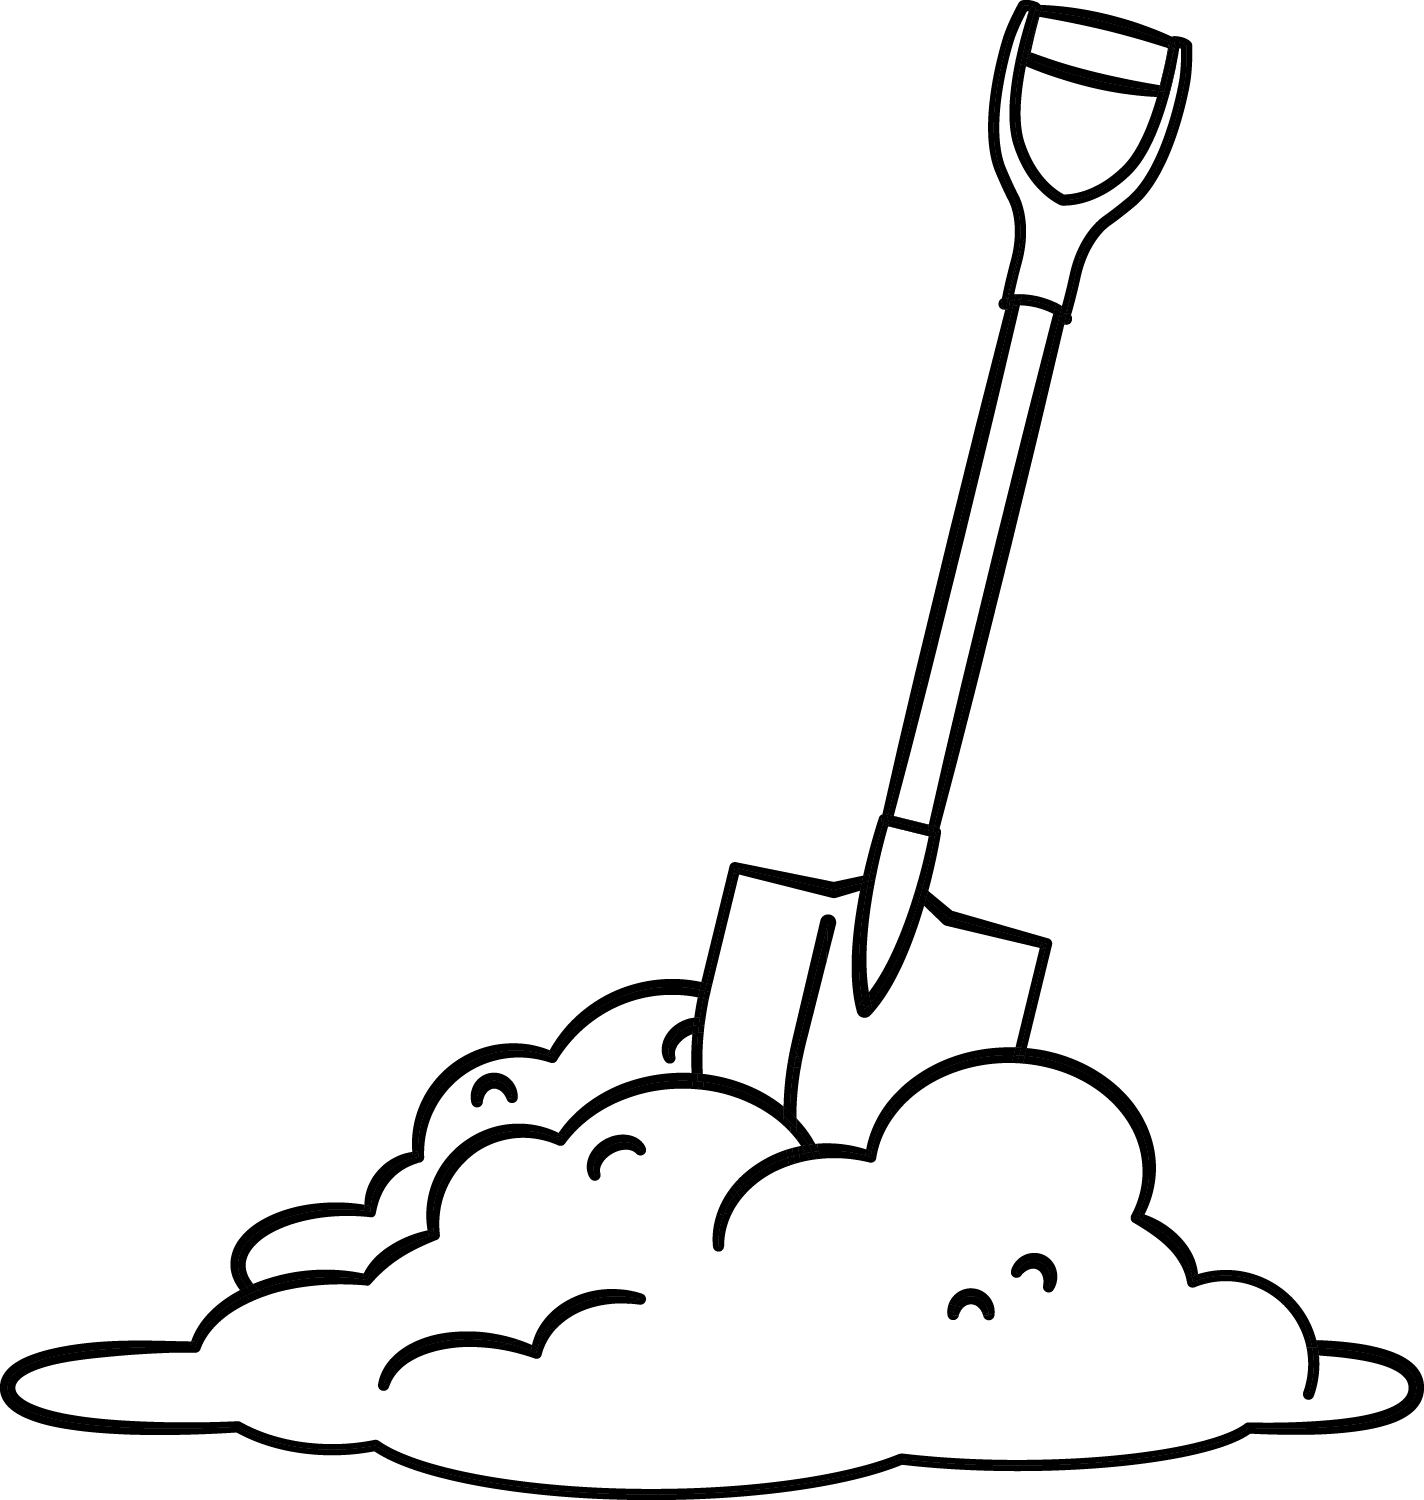 Free Shovel Clipart Pictures Clipartix Sketch Coloring Page